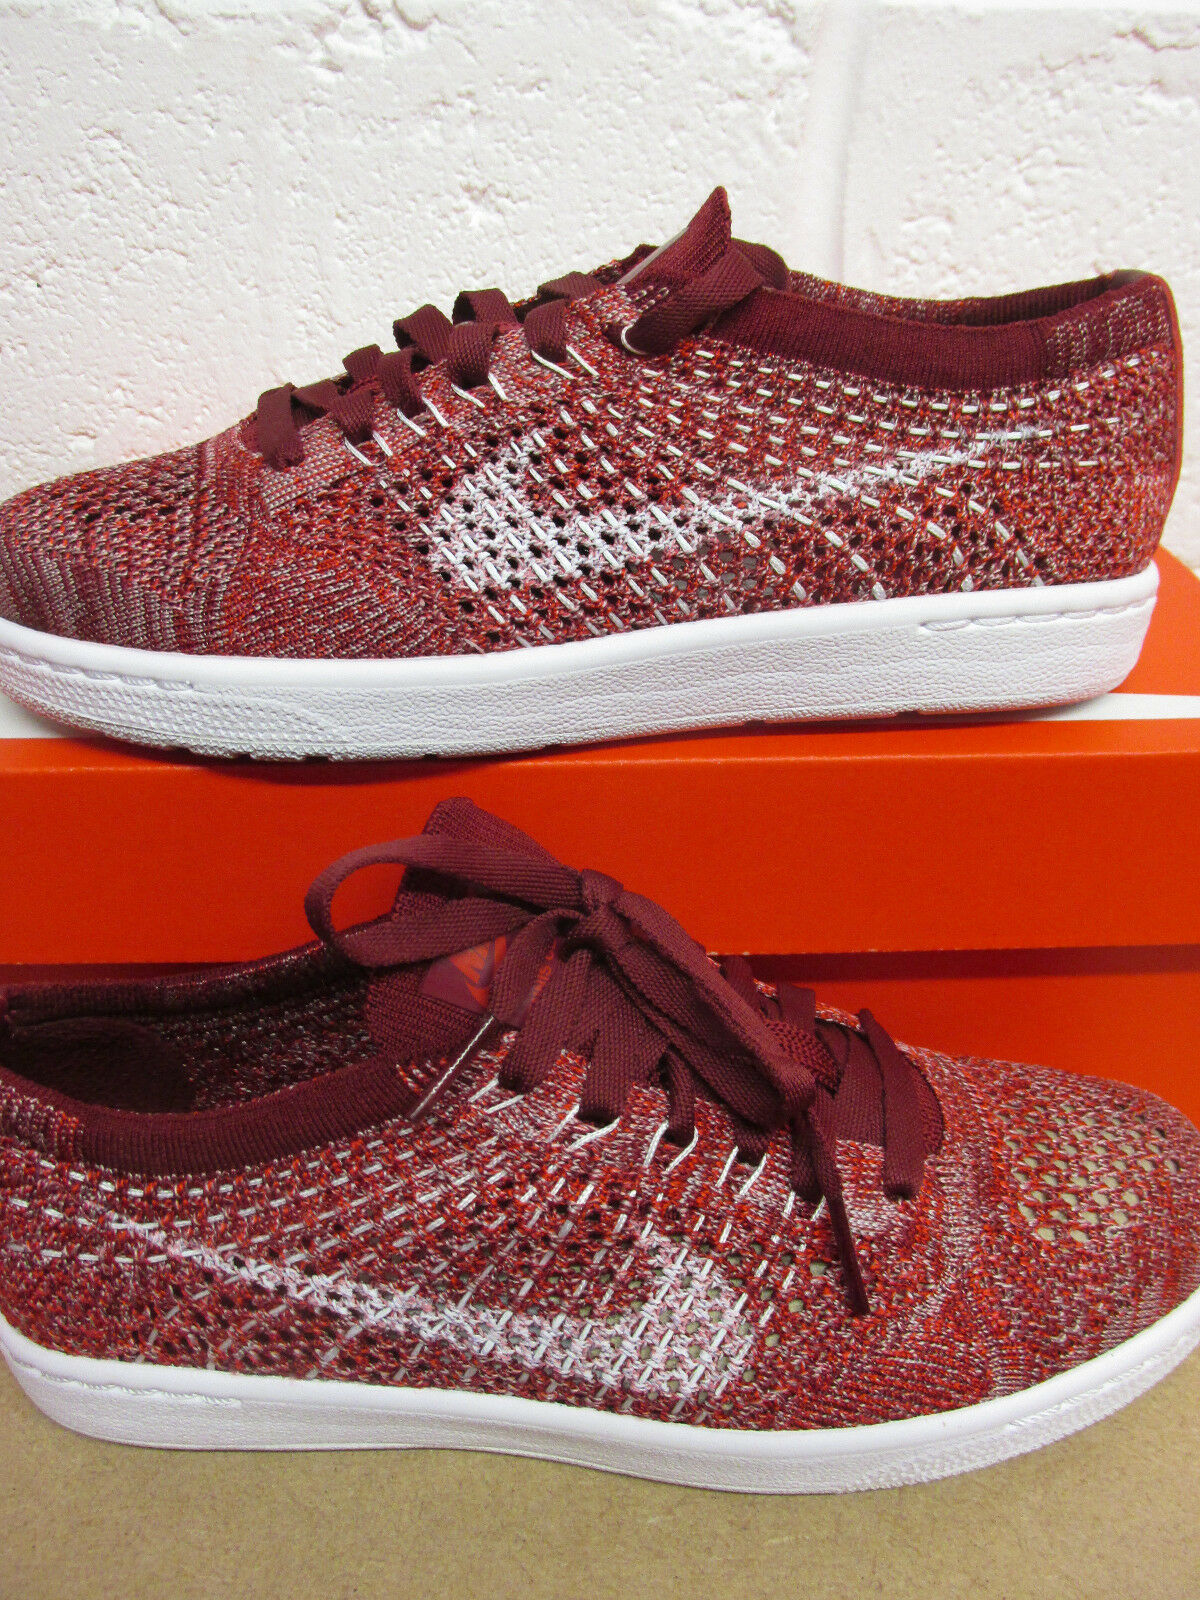 Nike Womens Tennis Classic Ultra Flyknit Running Trainers 833860 600 Sneakers